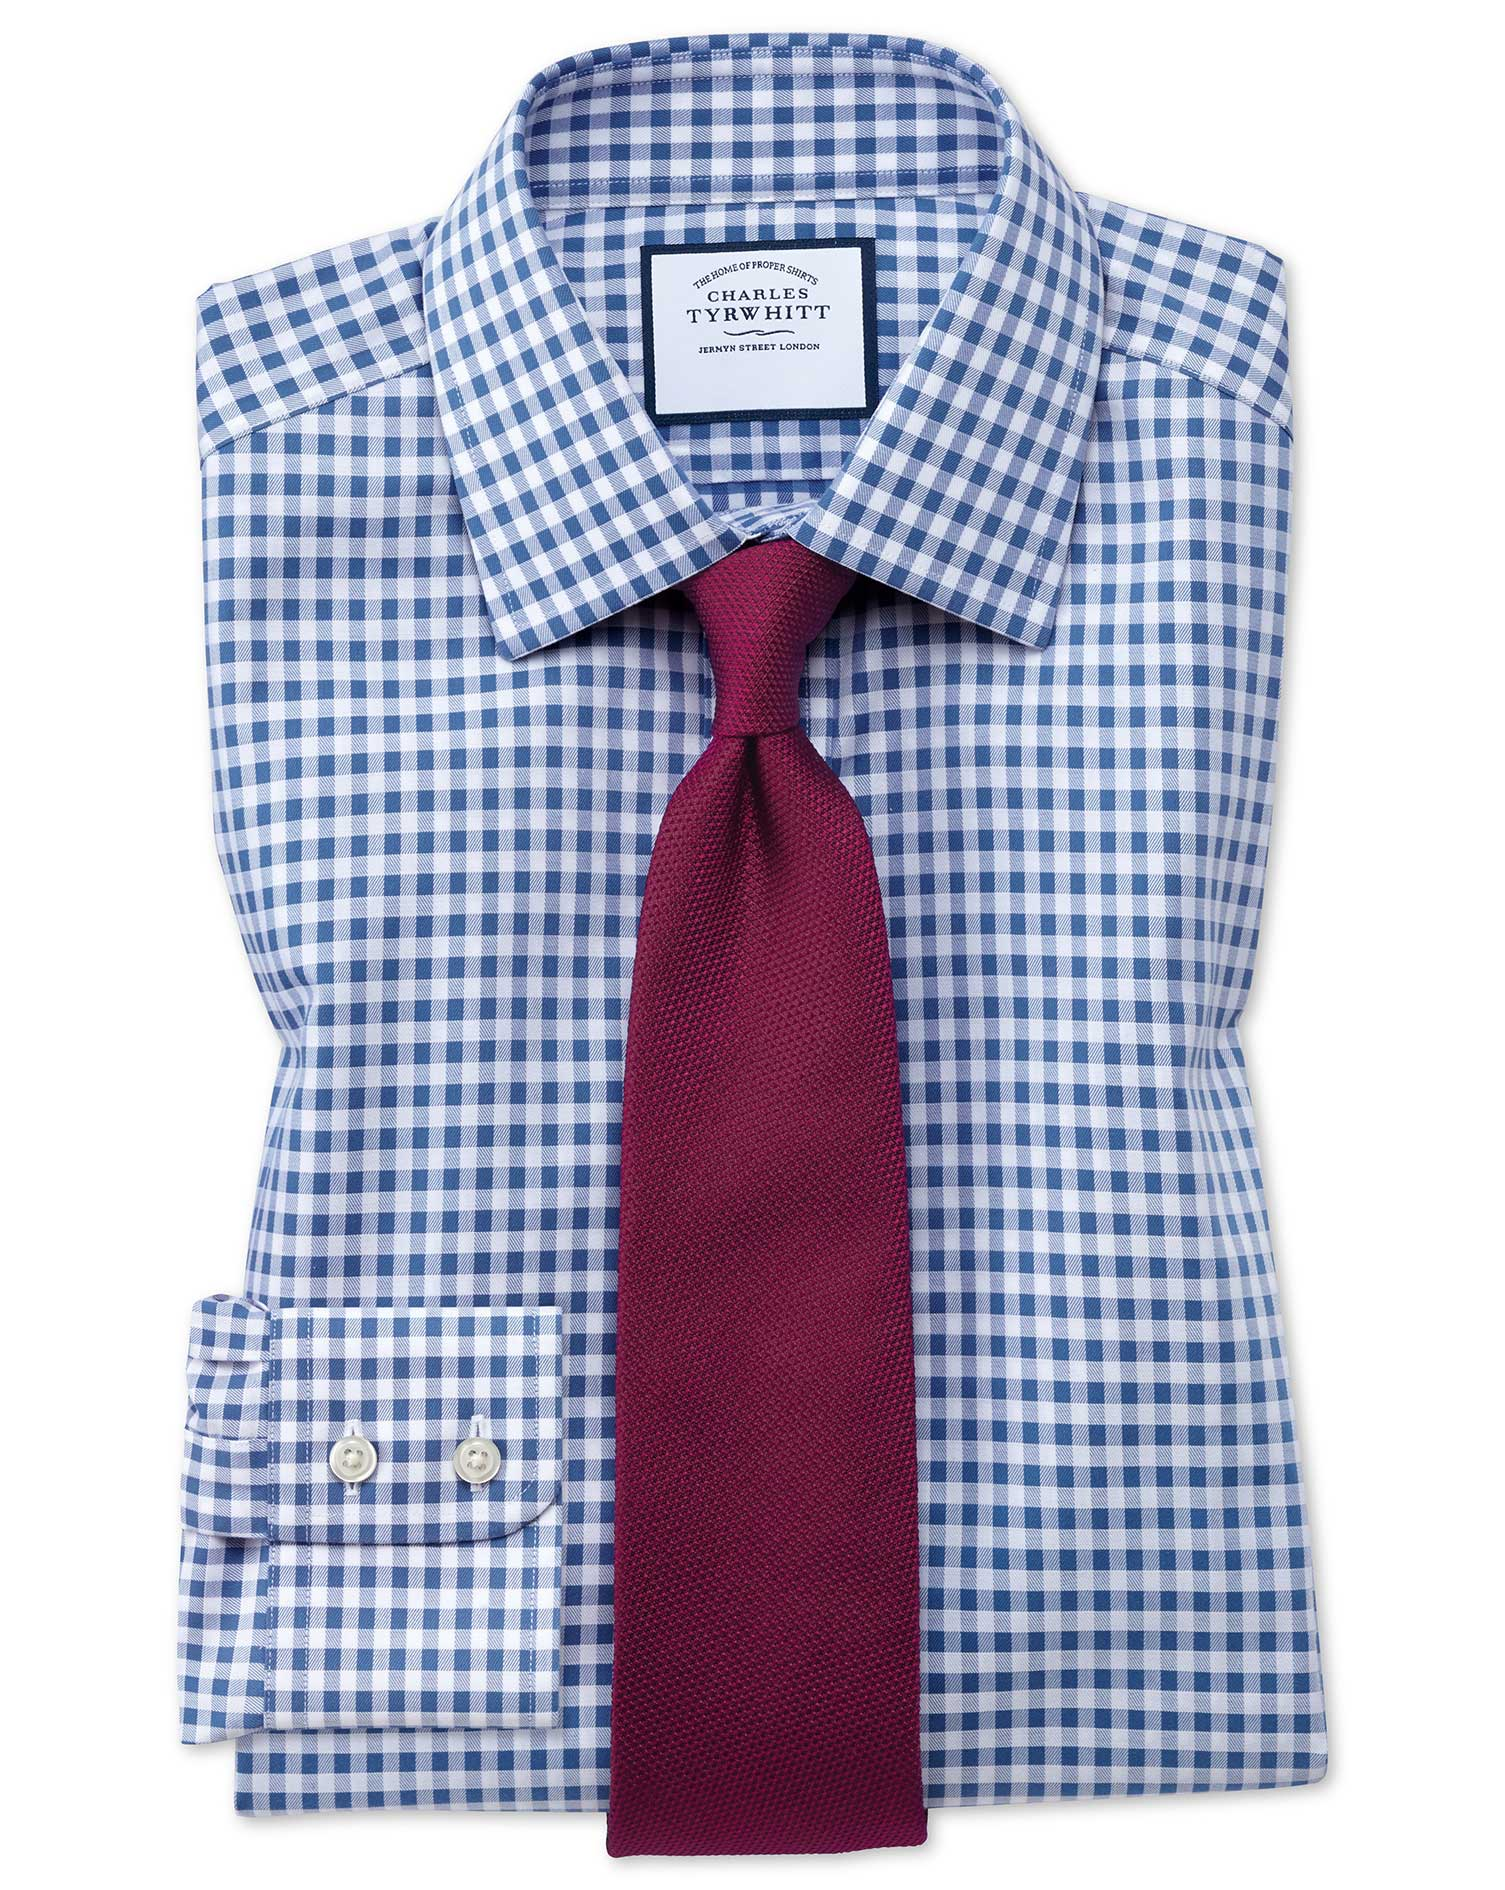 Slim Fit Non-Iron Gingham Mid Blue Cotton Formal Shirt Single Cuff Size 17/35 by Charles Tyrwhitt